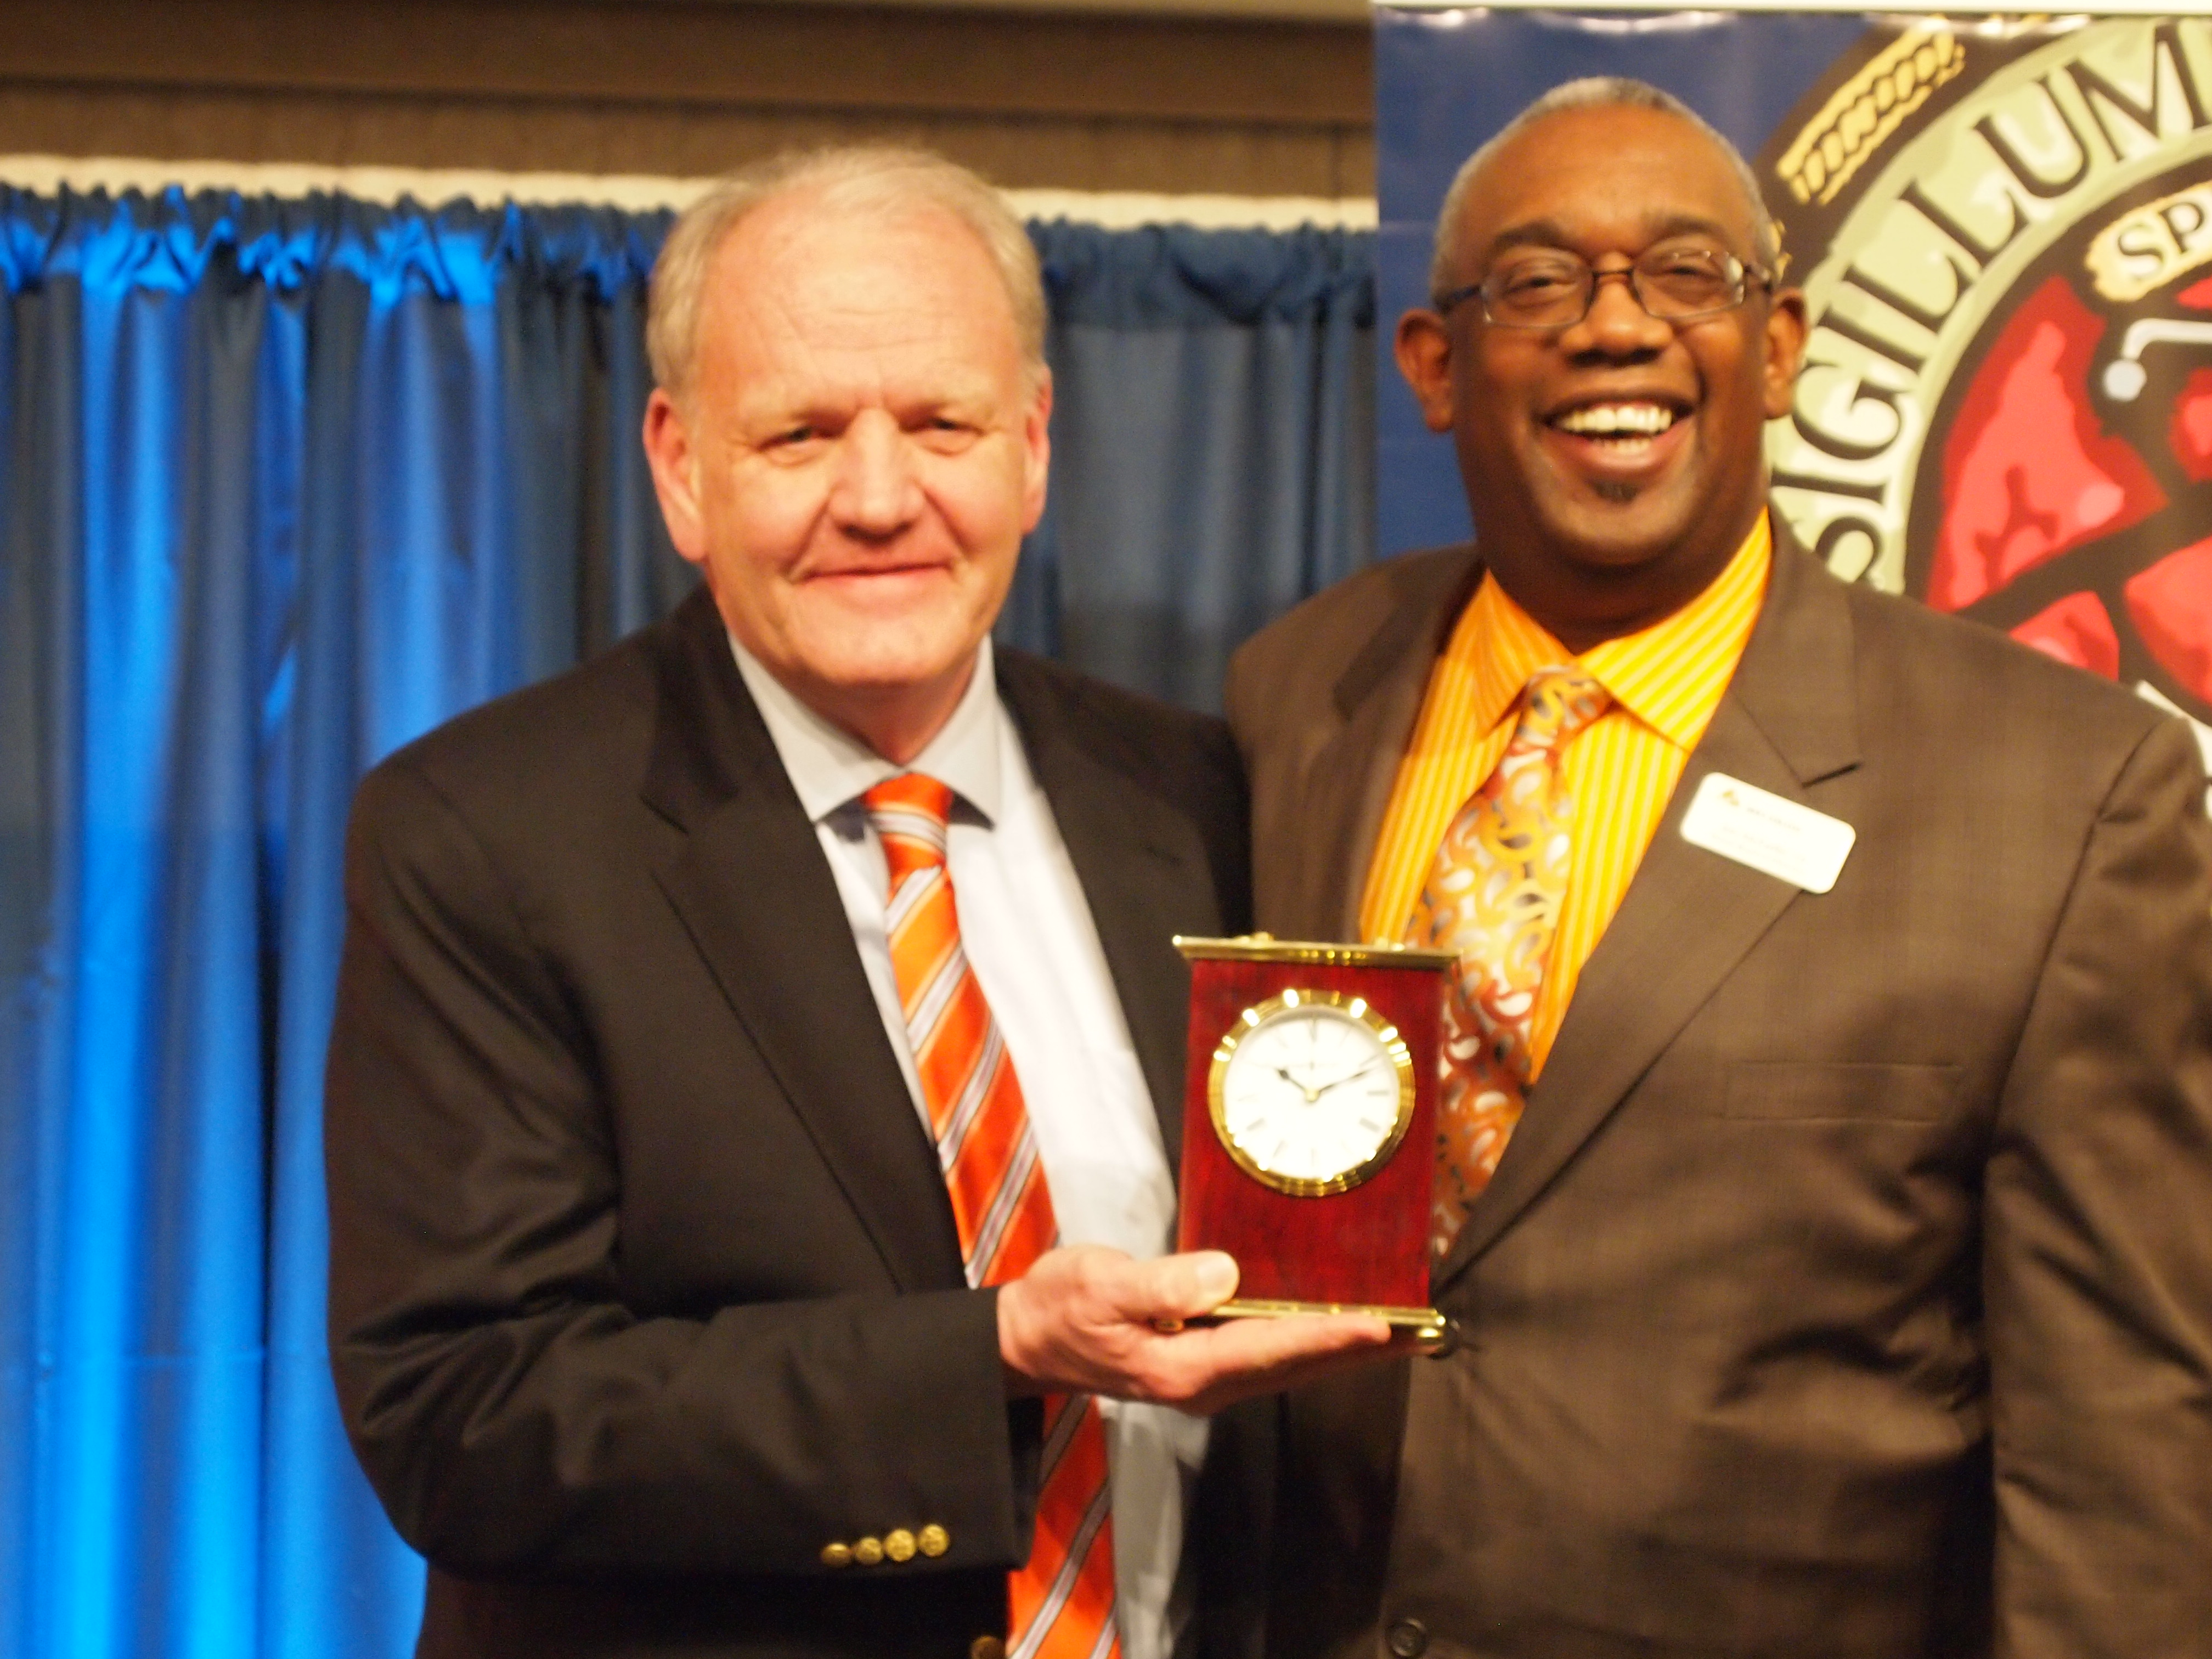 Hope College Meritorious Service Award recipient